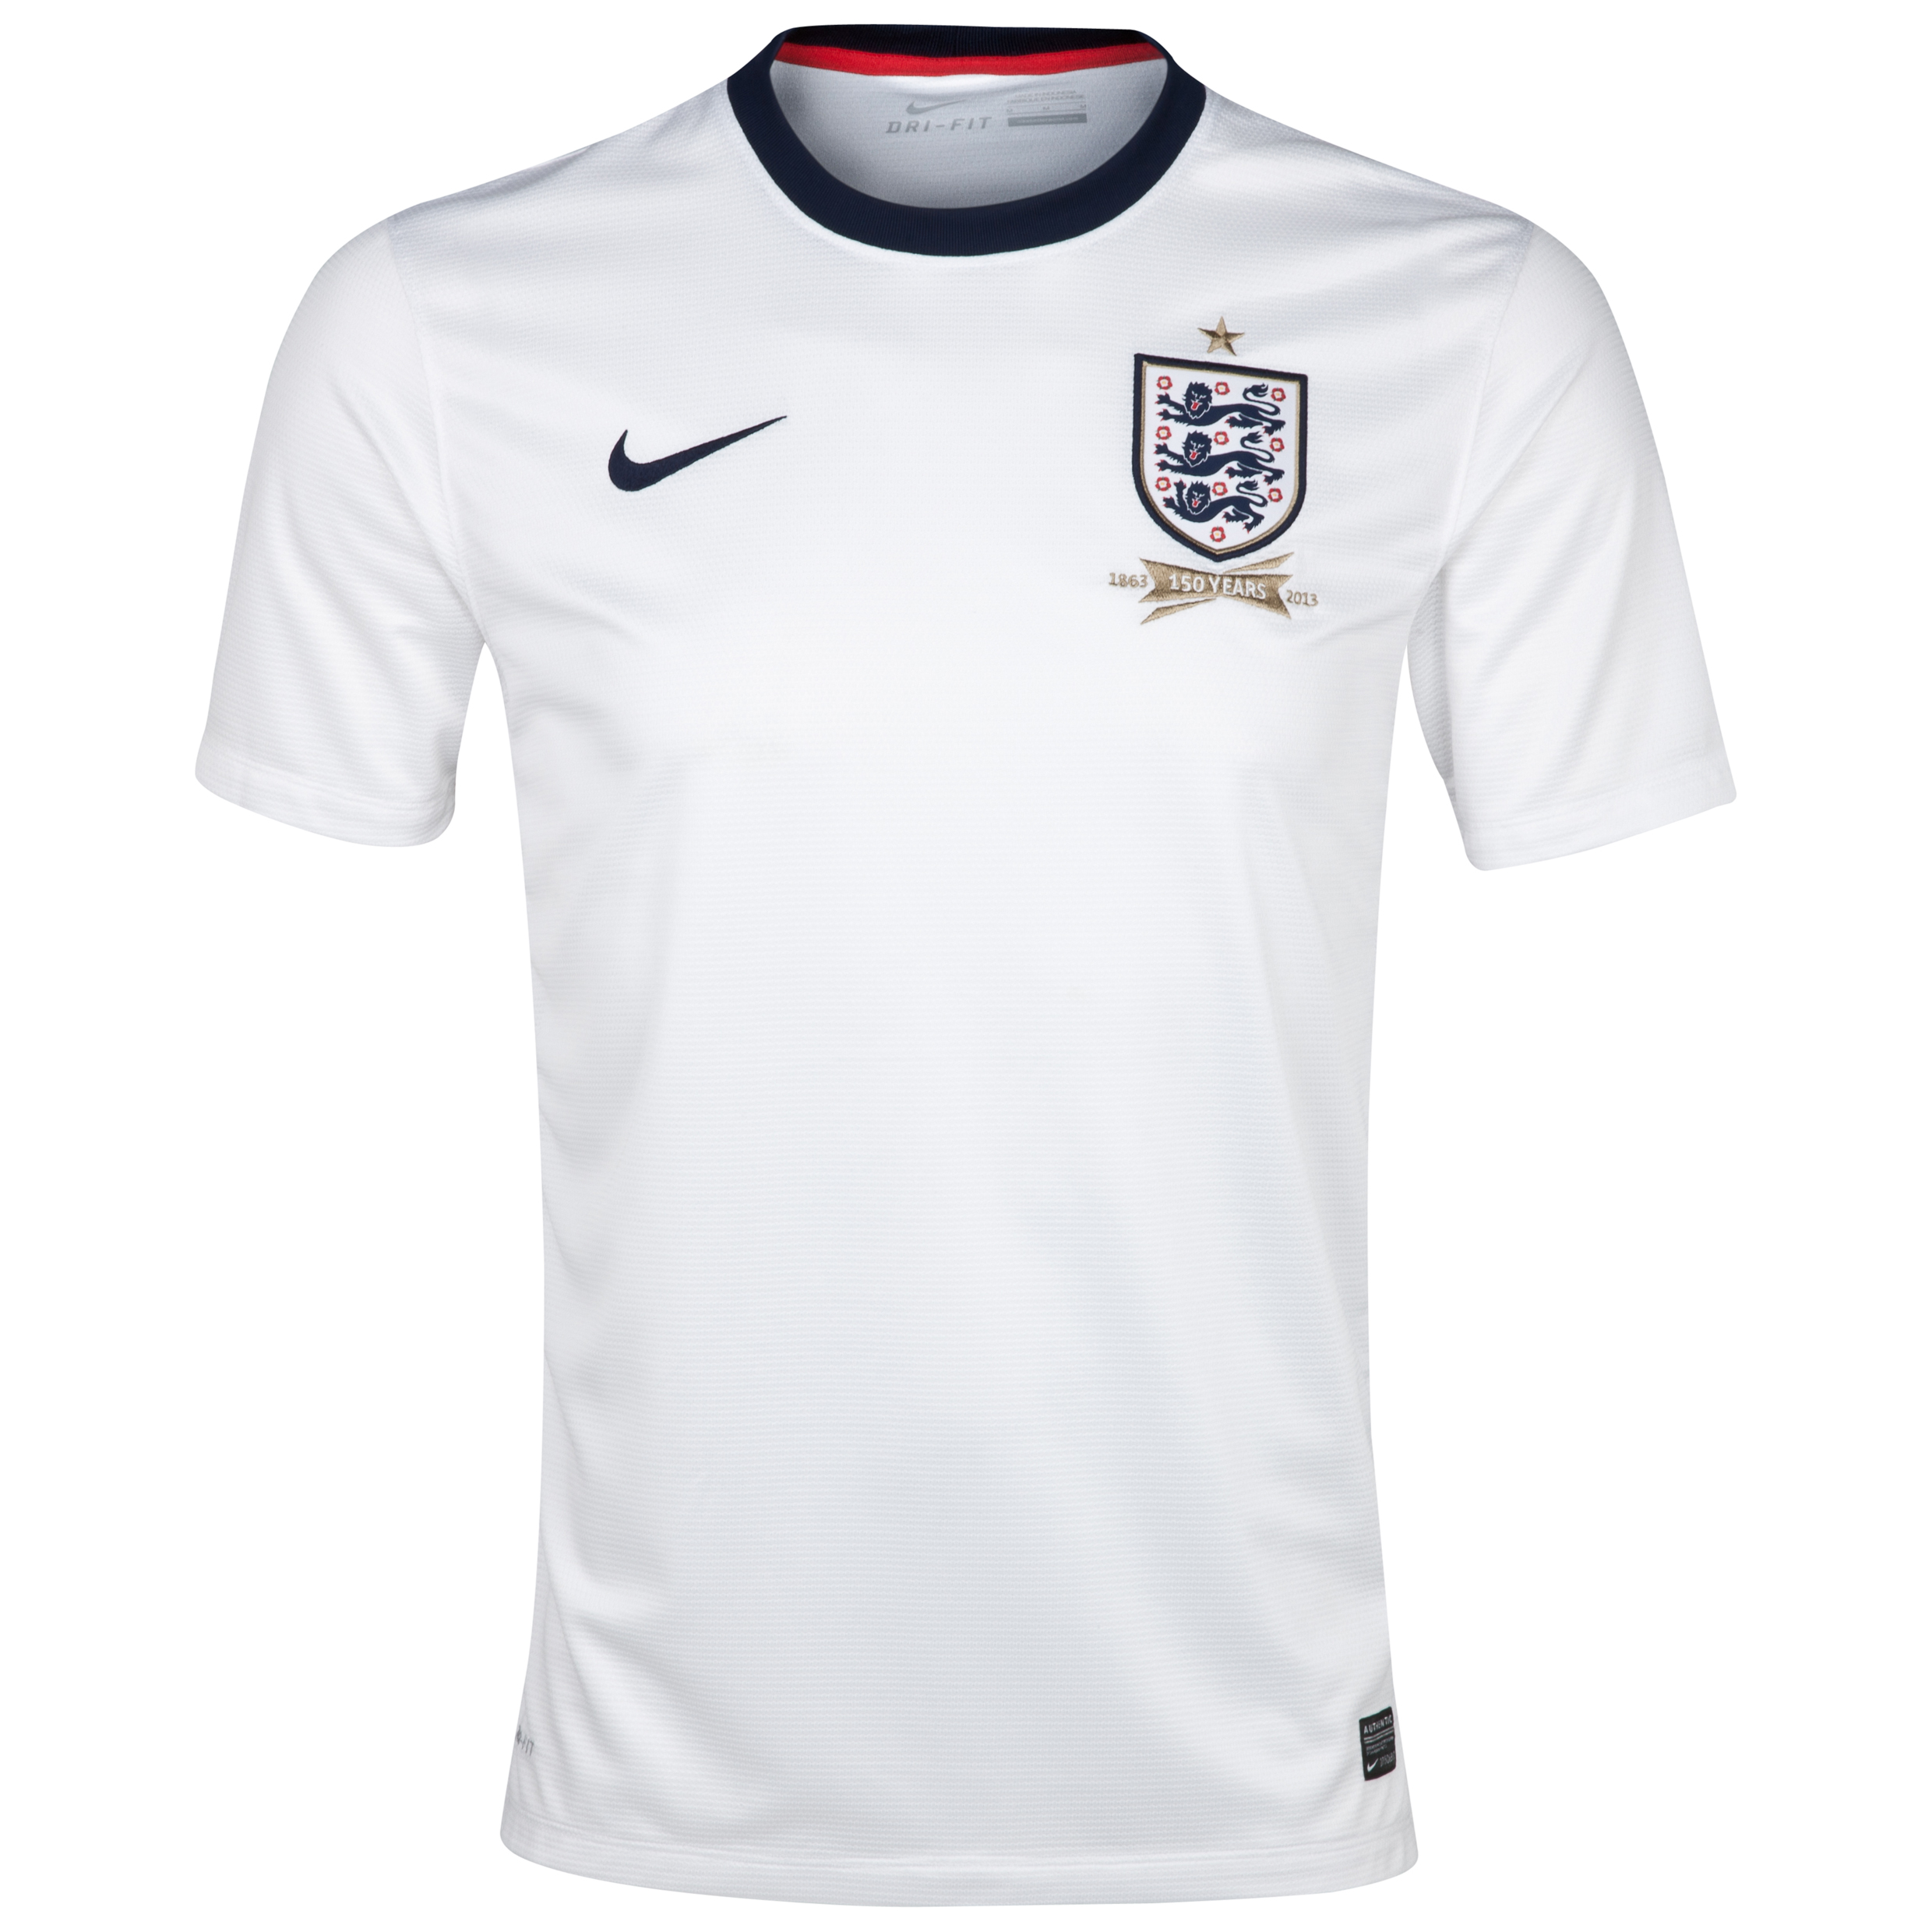 England Home Shirt 2013/14 - Mens White